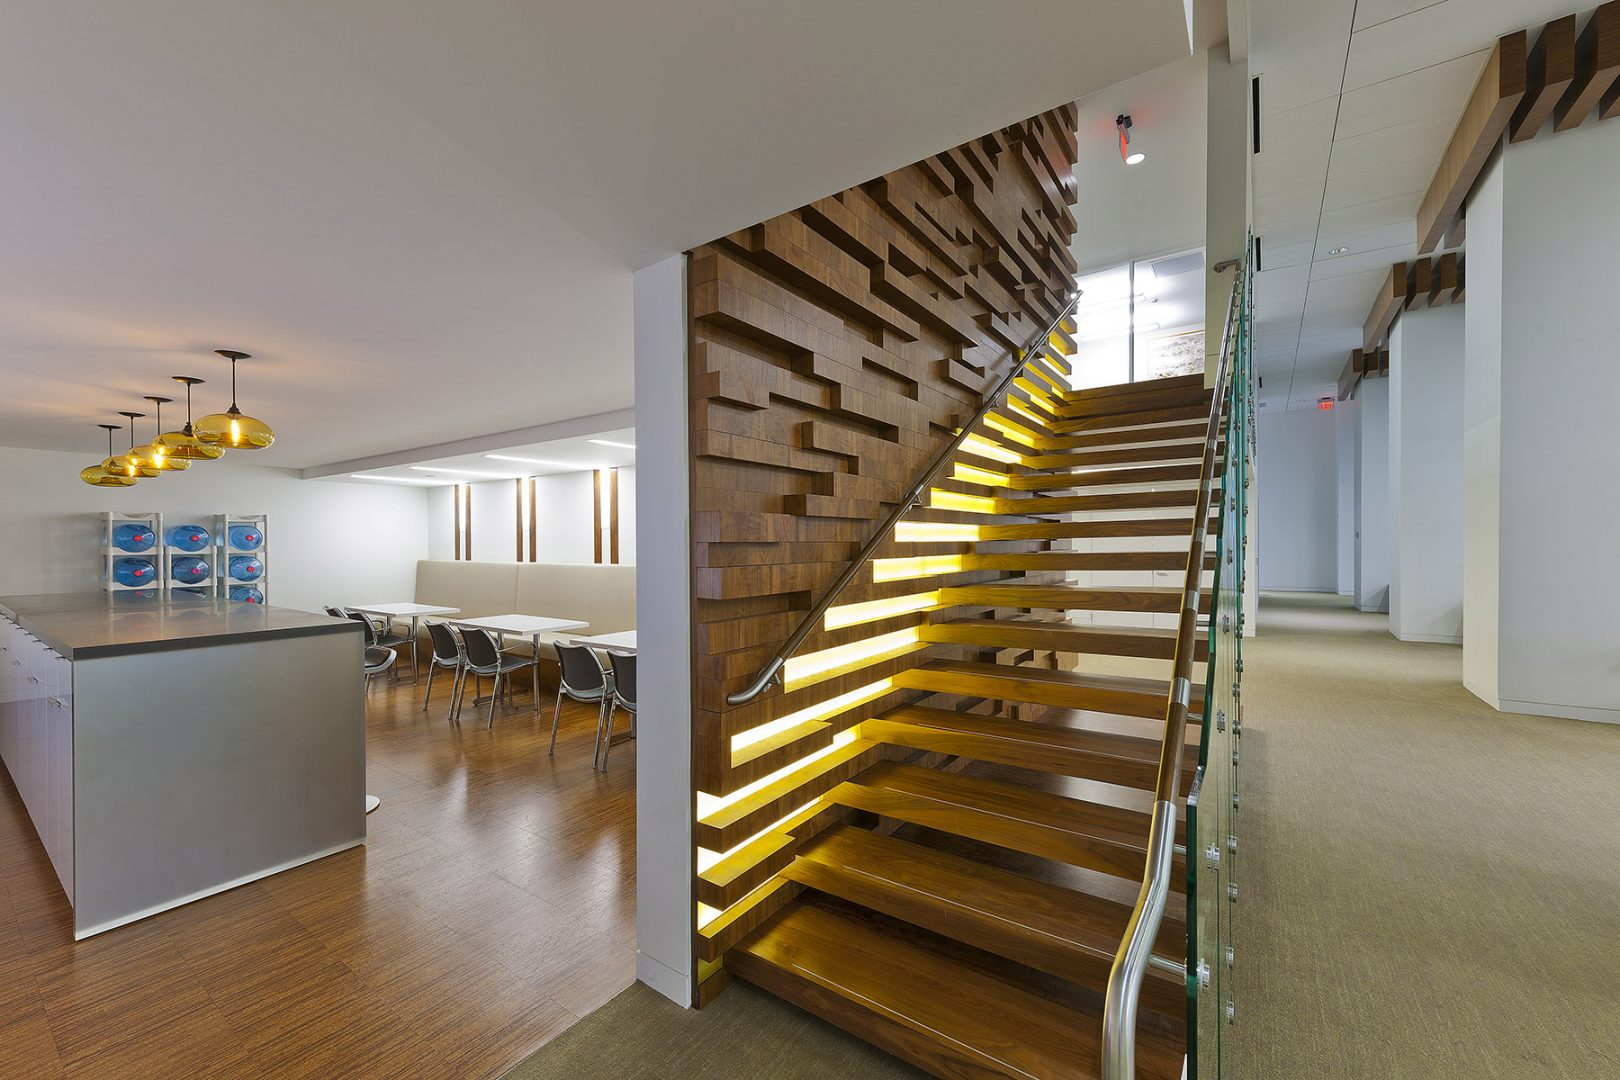 Corporate Hedge Fund Houston Interior Design Central Staircase Wood Wall